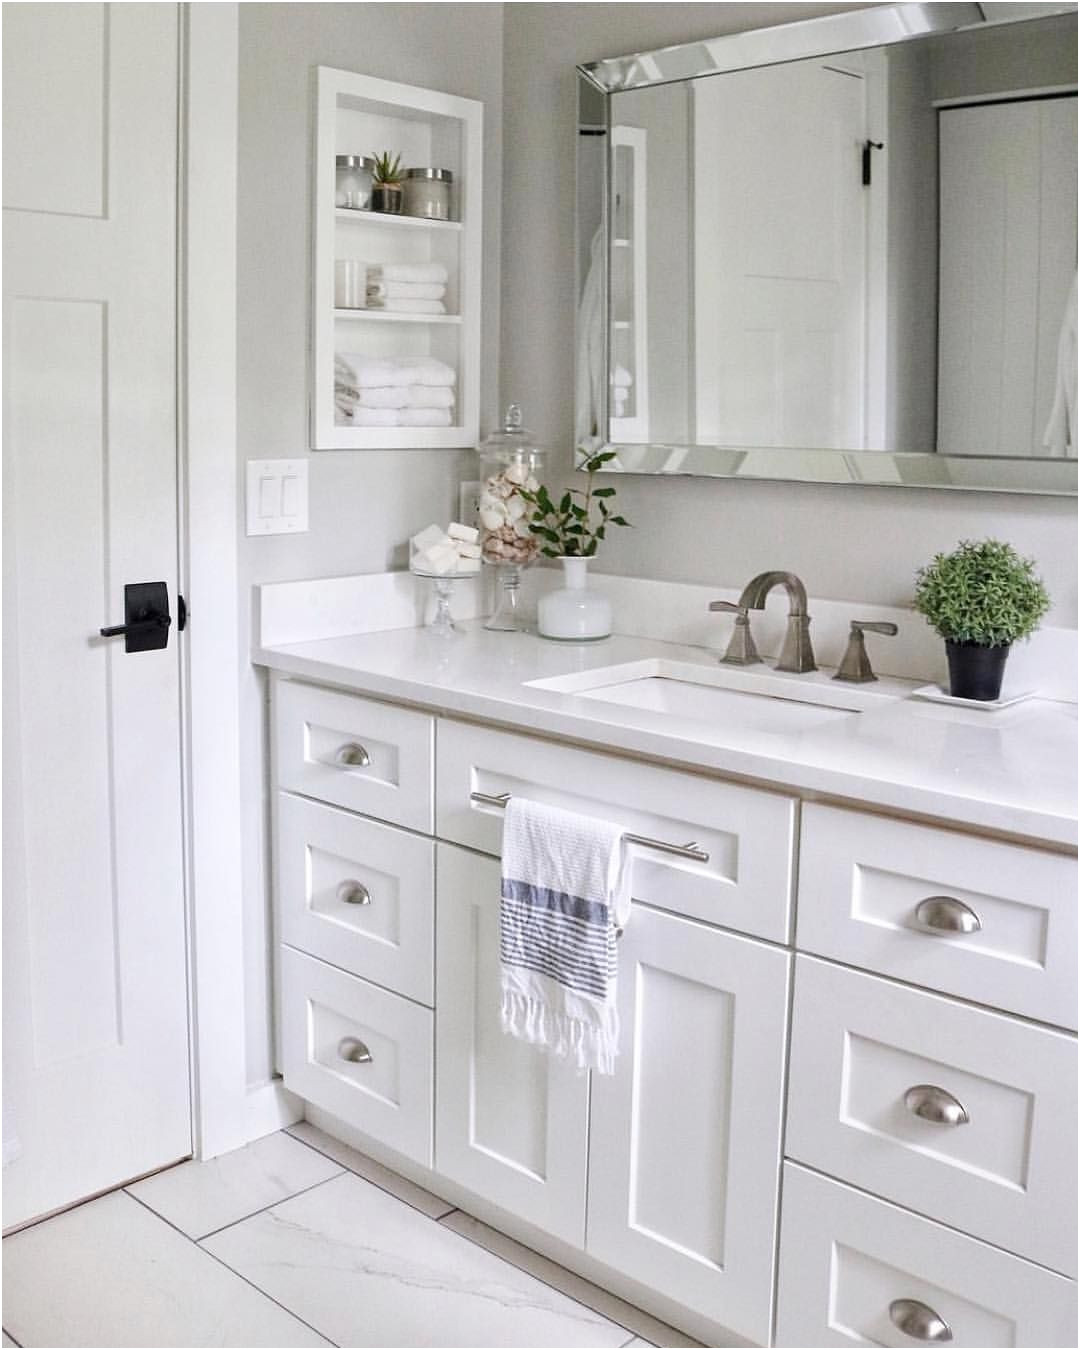 Unique Mirrored Bathroom Cabinet with Shelf